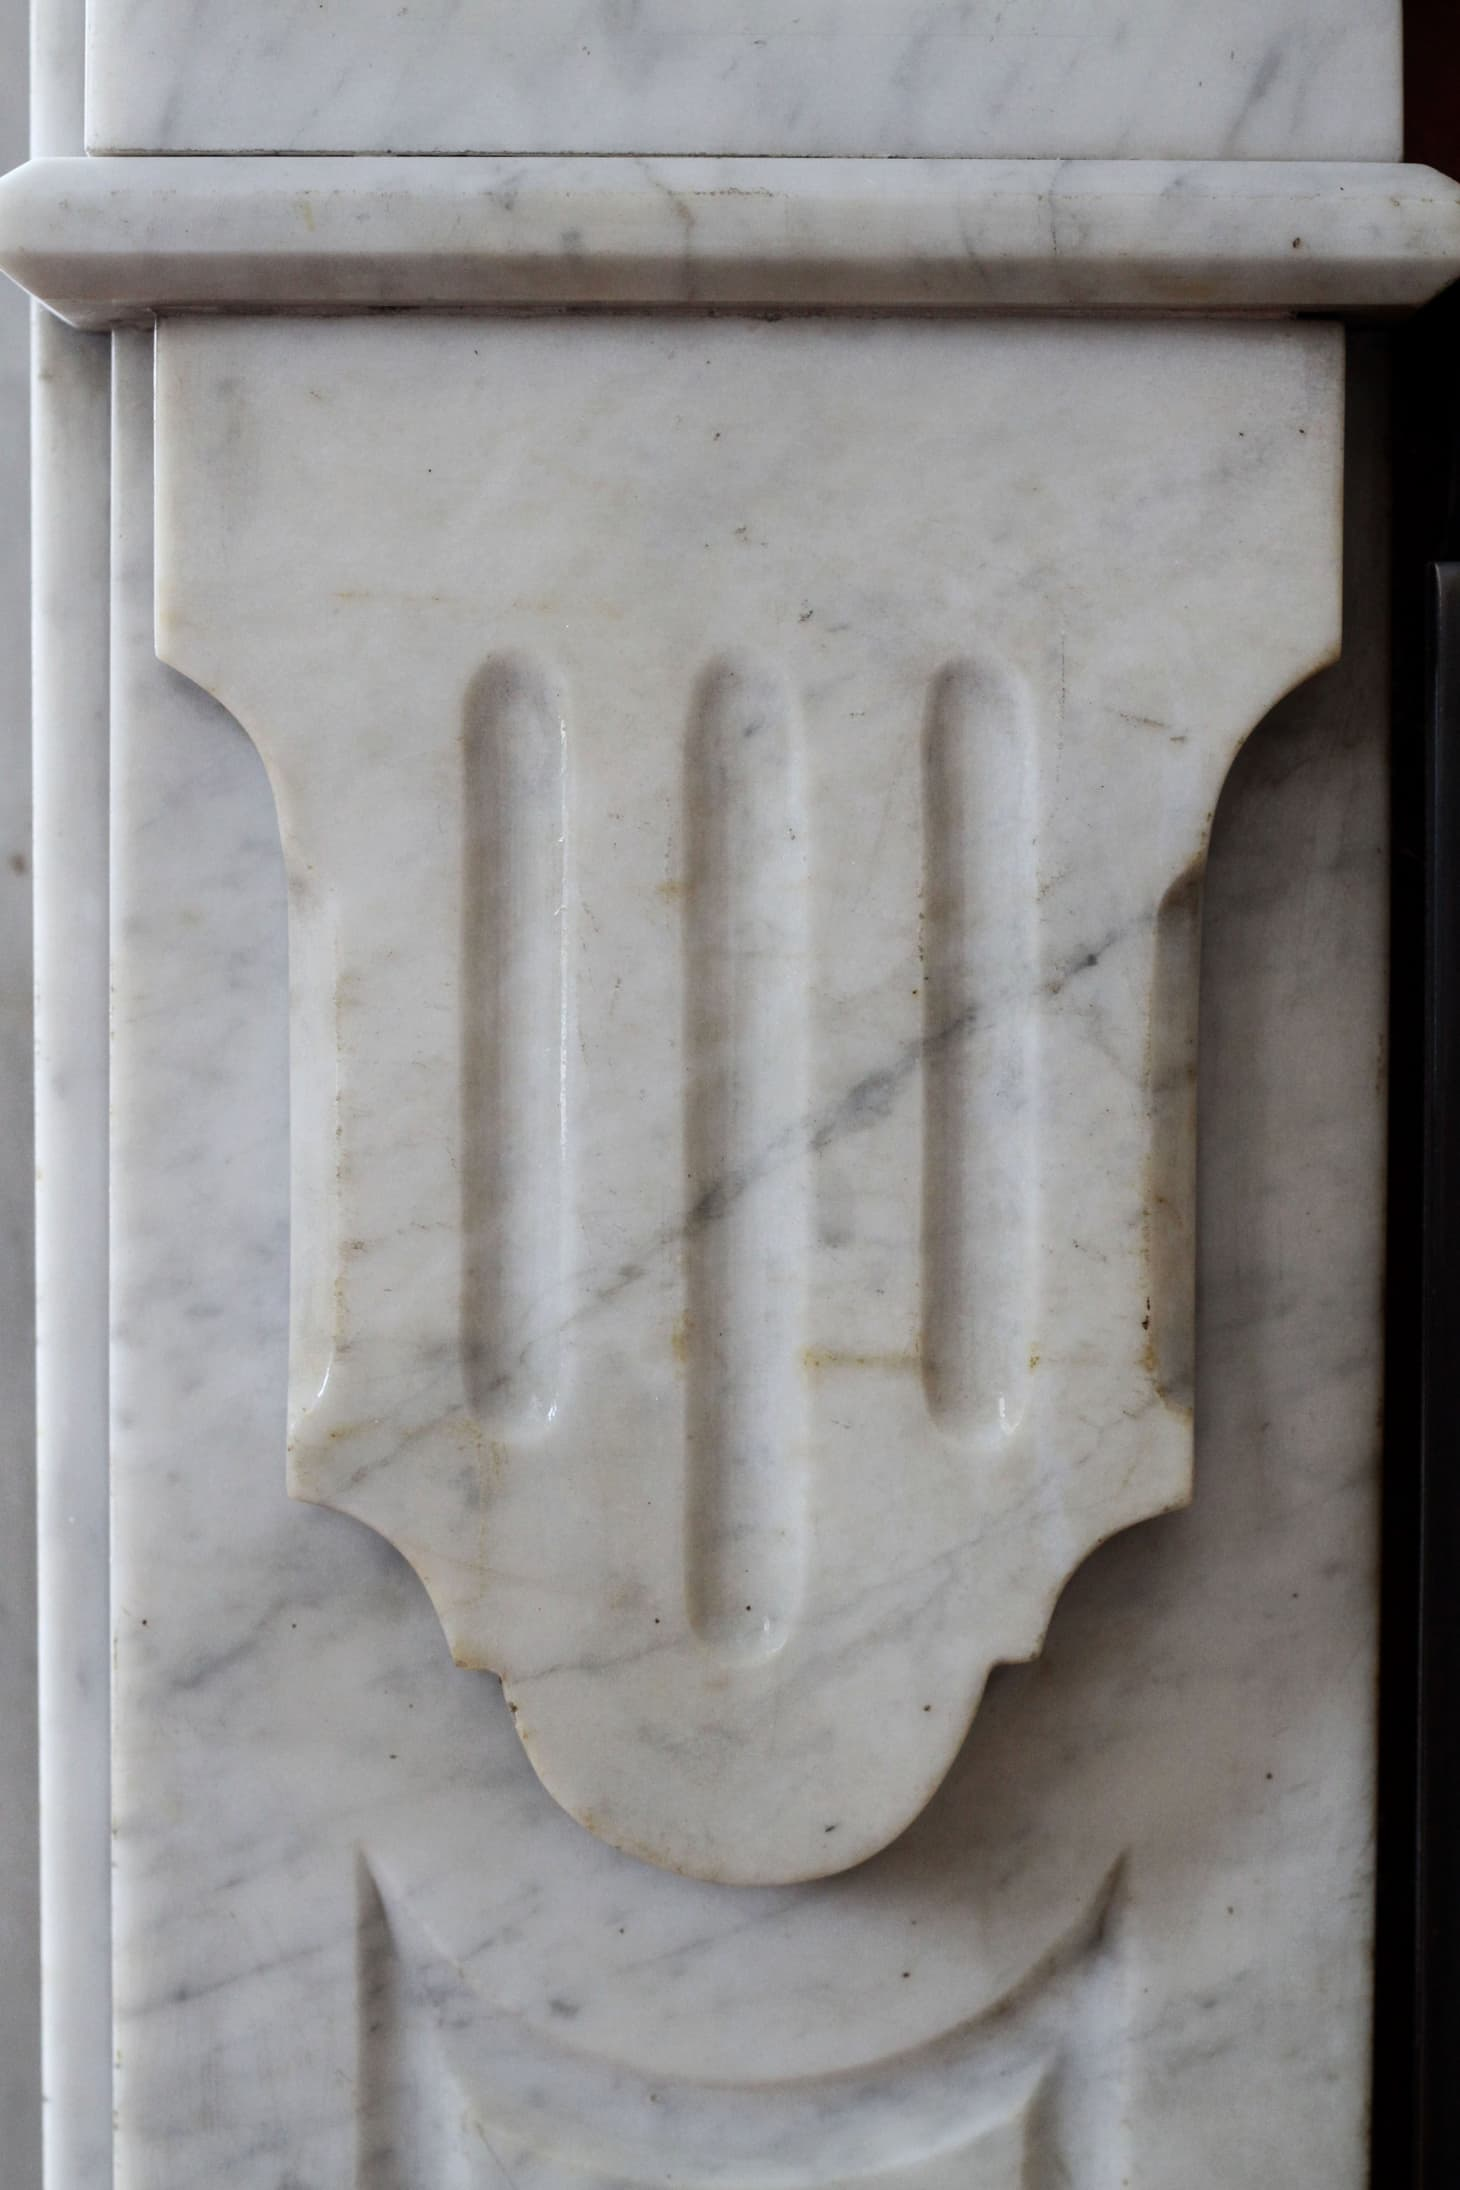 How To Remove Stains From Marble Surfaces | Apartment Therapy